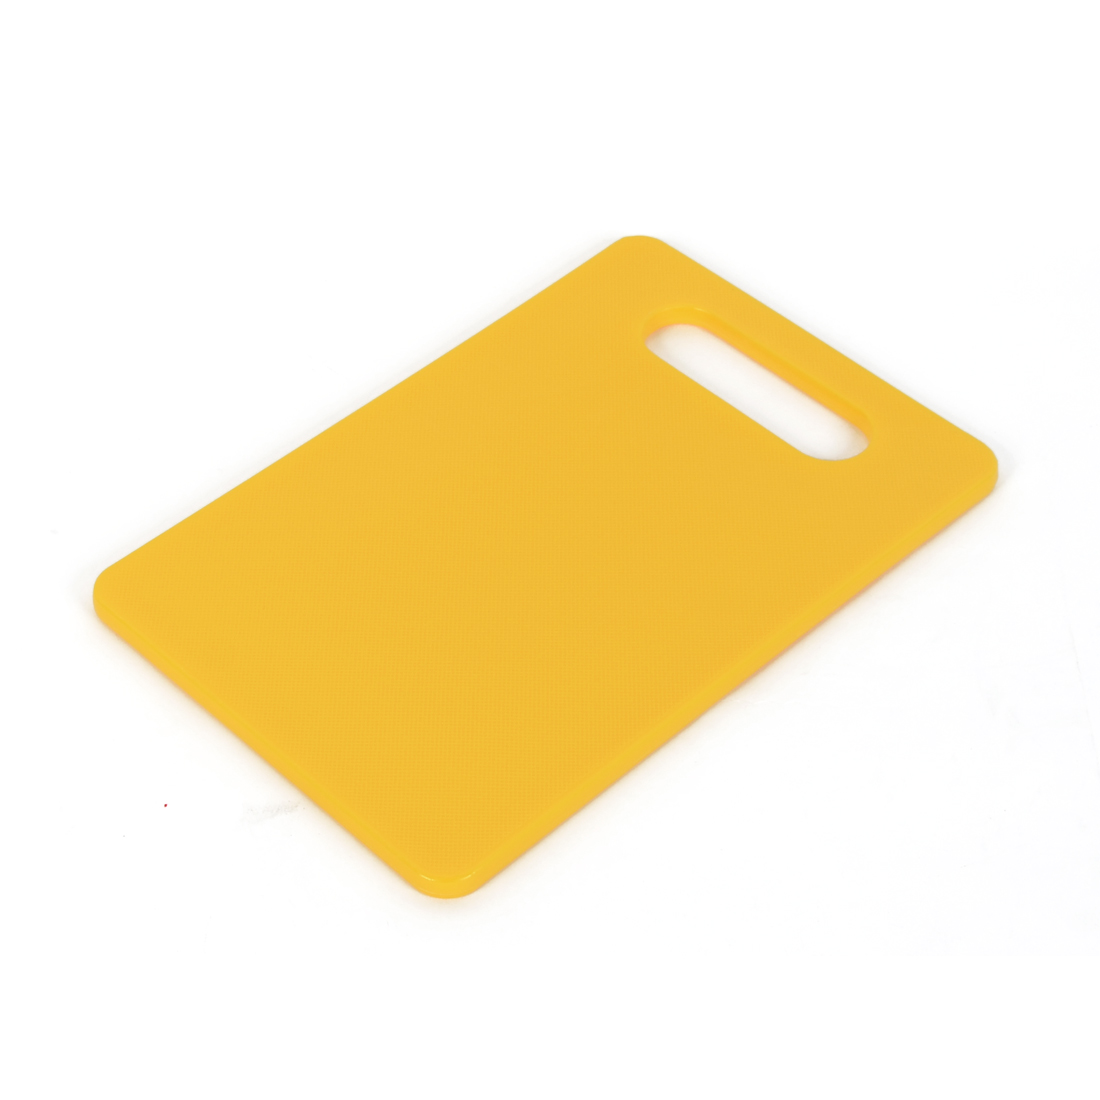 Kitchen Food Plastic Chopping Cutting Slicing Dicing Board Mat Yellow